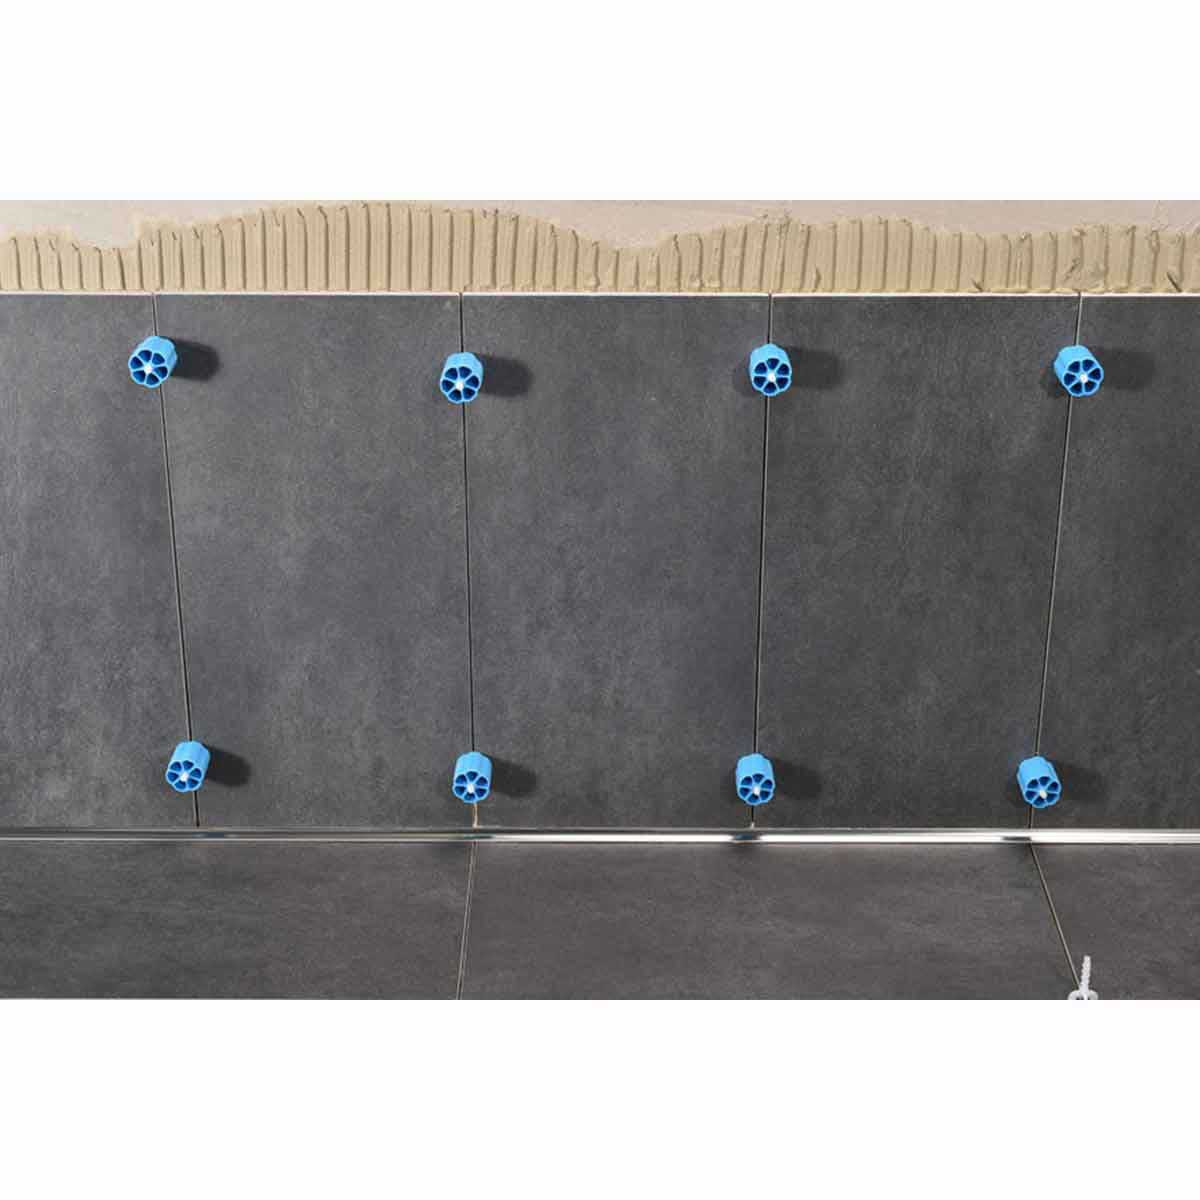 prsl proleveling system on wall